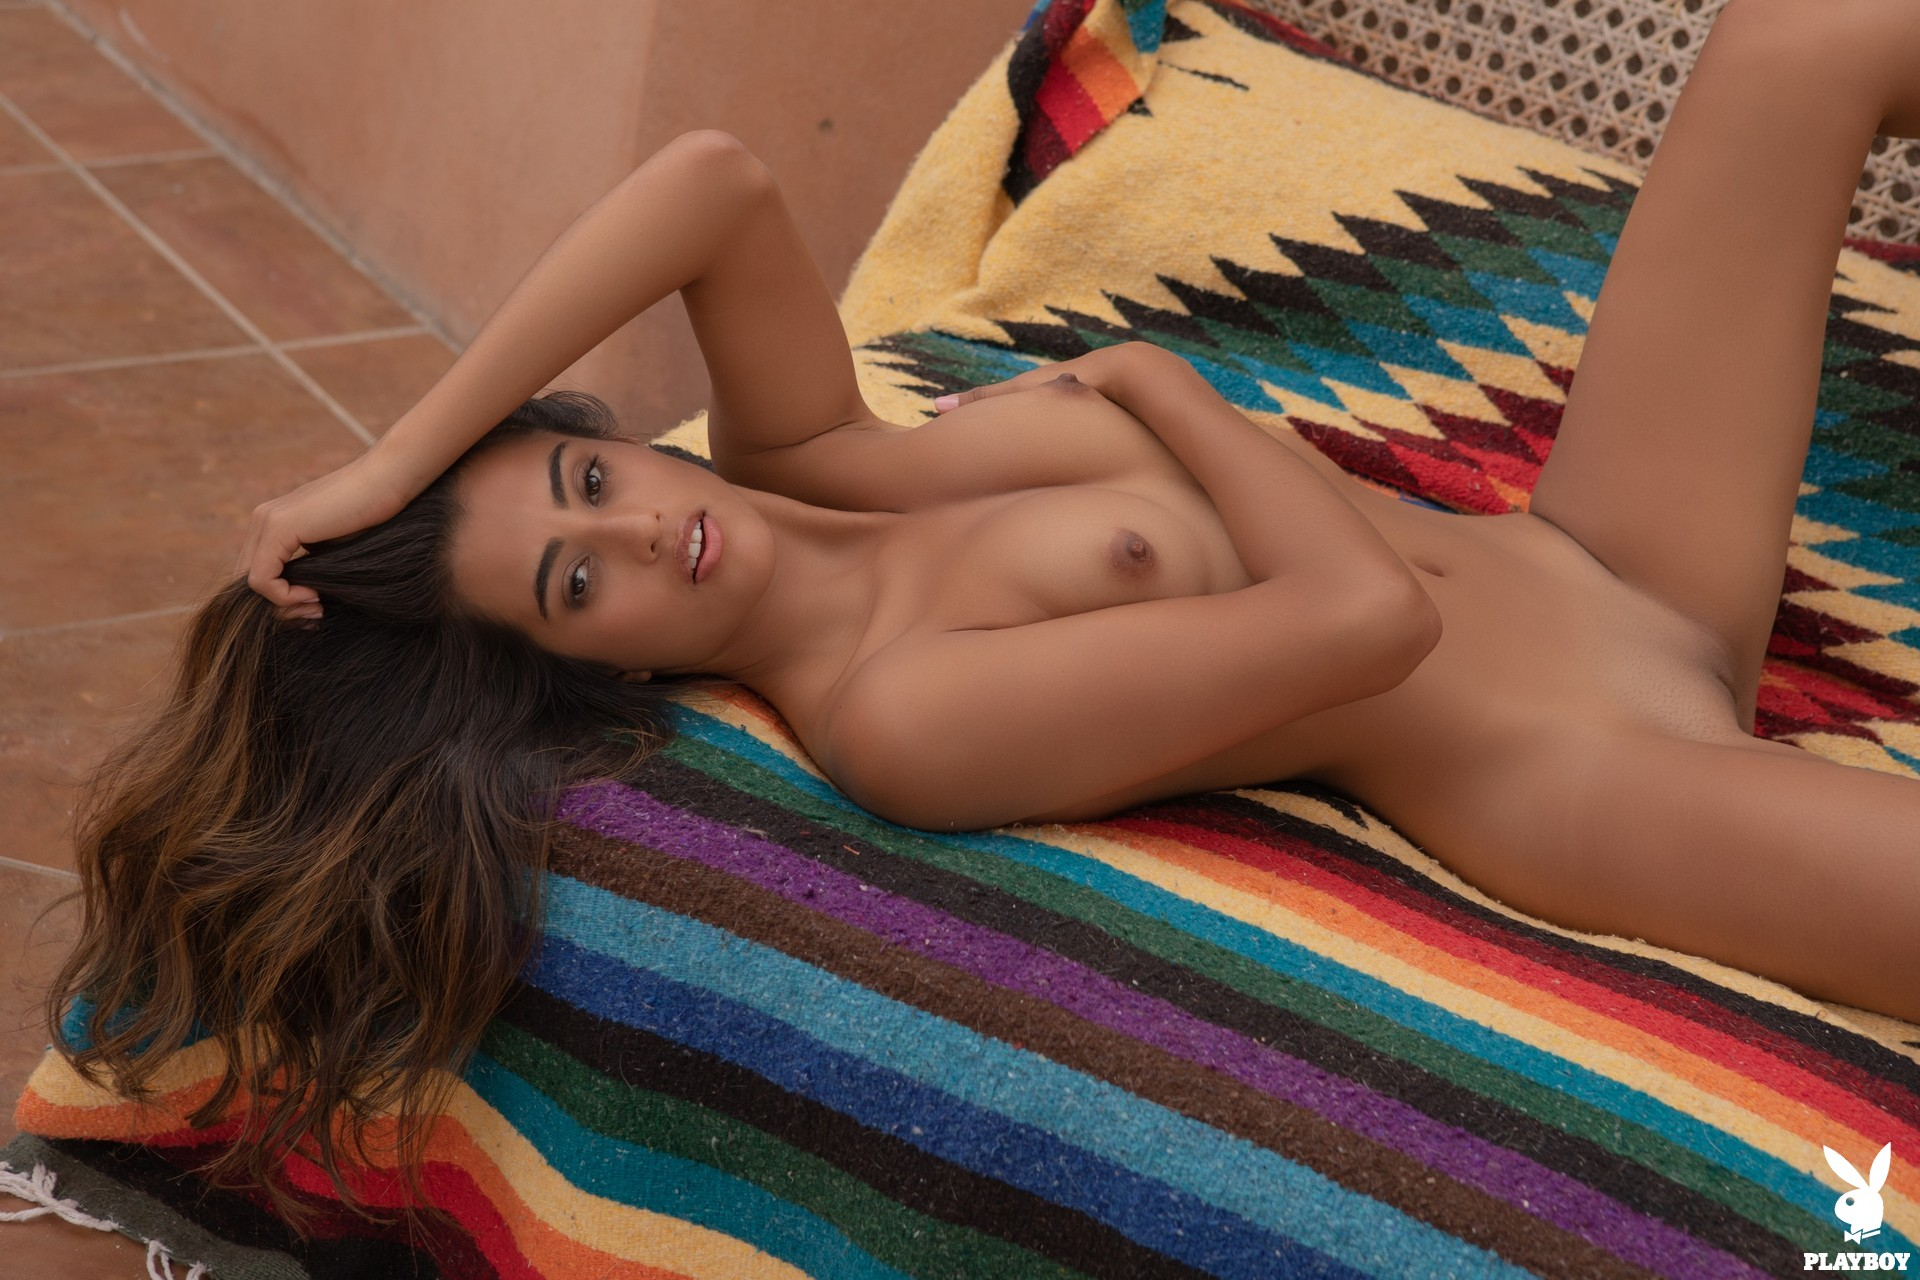 Katherinne Sofia in Finding Bliss - Playboy Plus 17